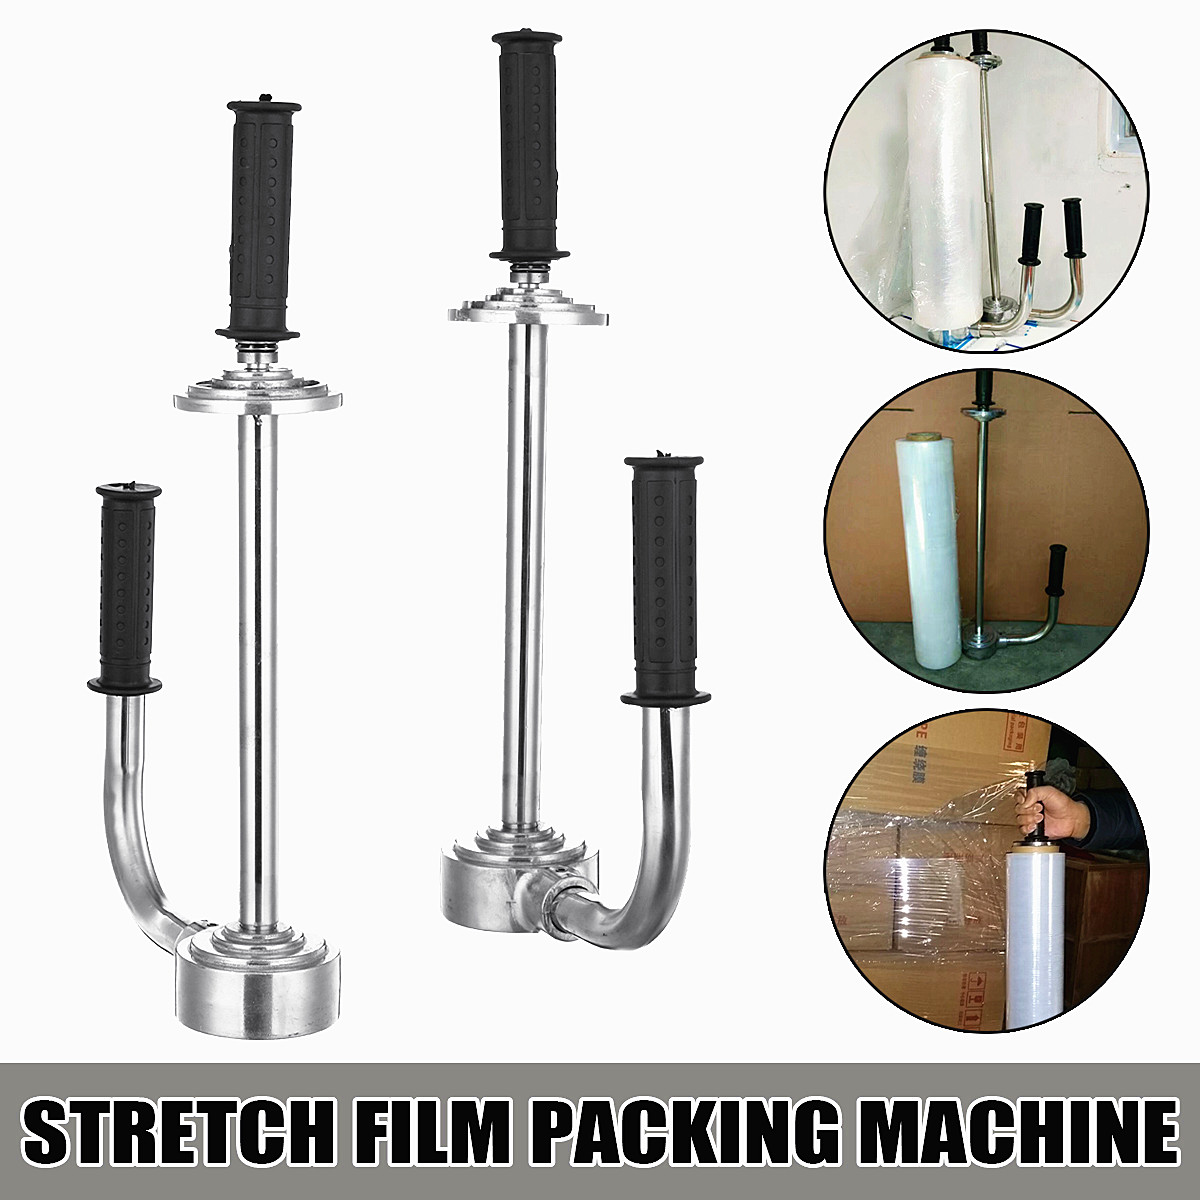 12 20 Handy manual handle stretch film wrapping dispenser tools pallet stretch packing equipment carton package